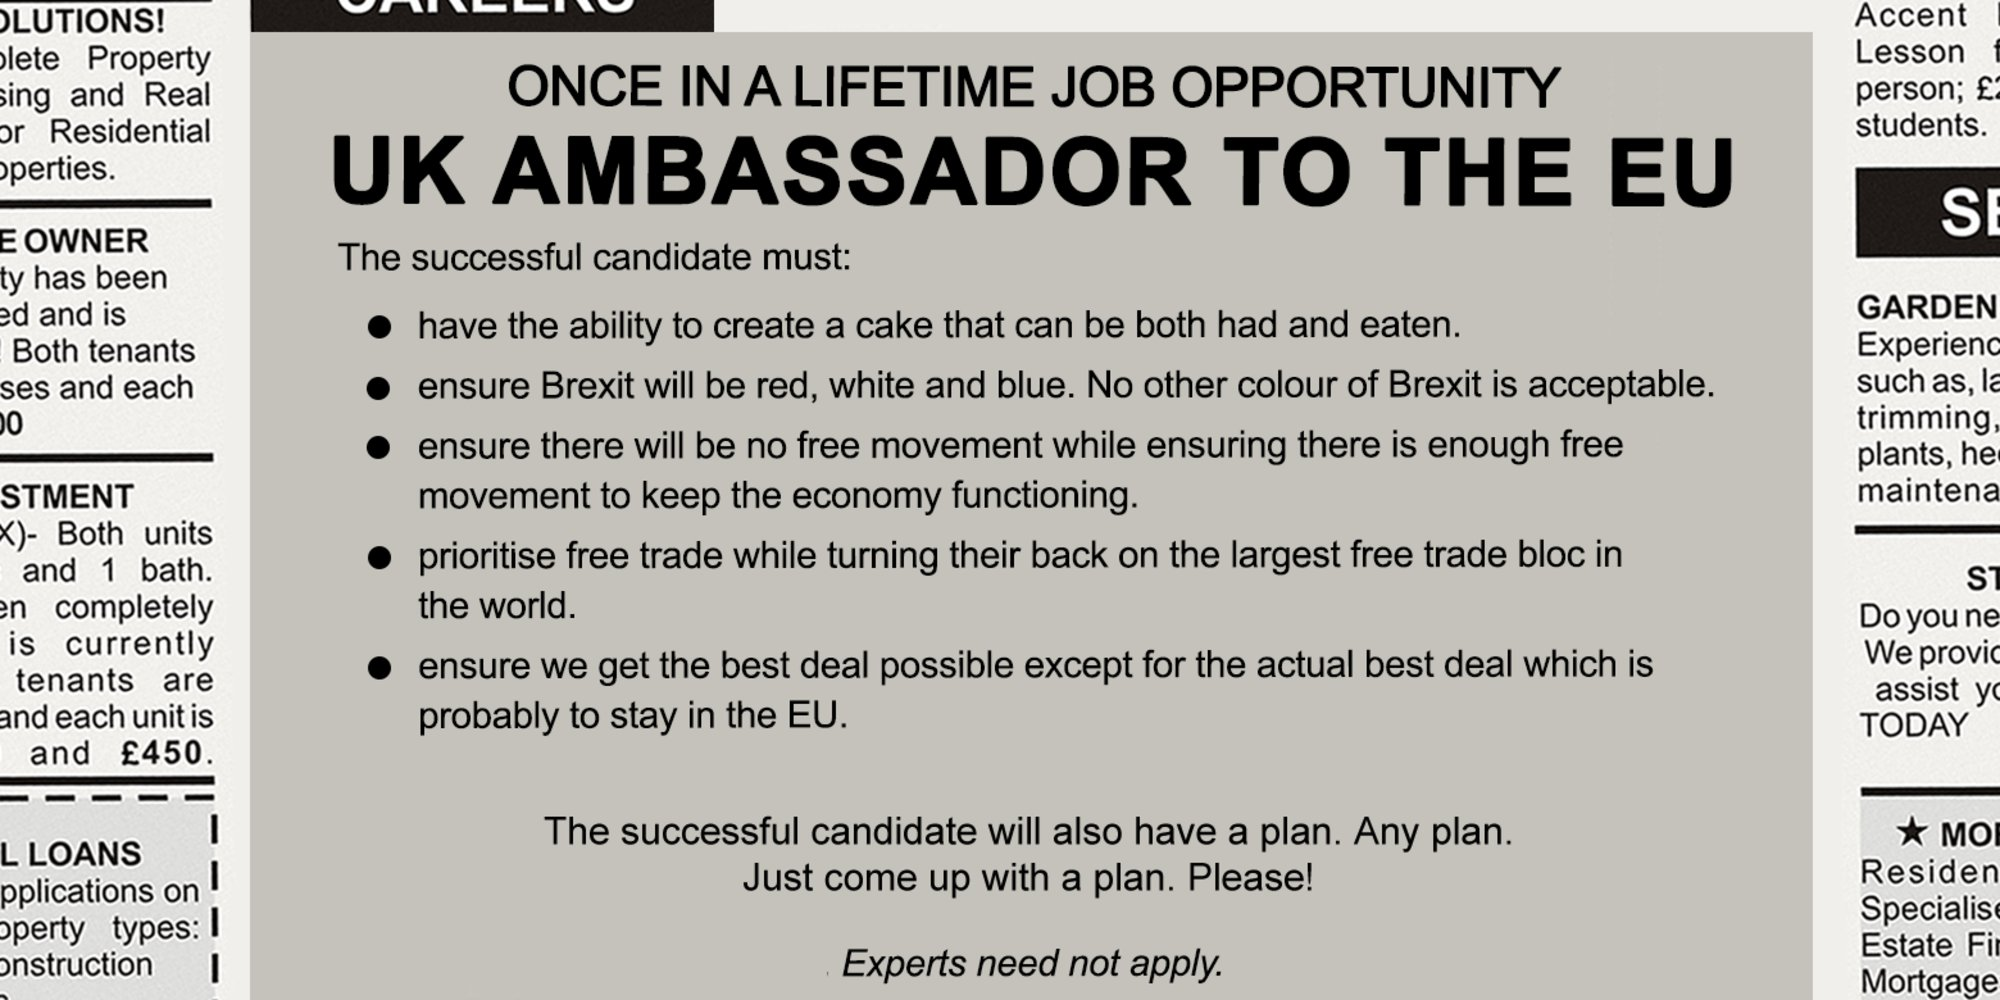 Looks like the government's job ad for ambassador to the EU is already up. (done for @huffpostukcom) https://t.co/e9OoMIdpCh